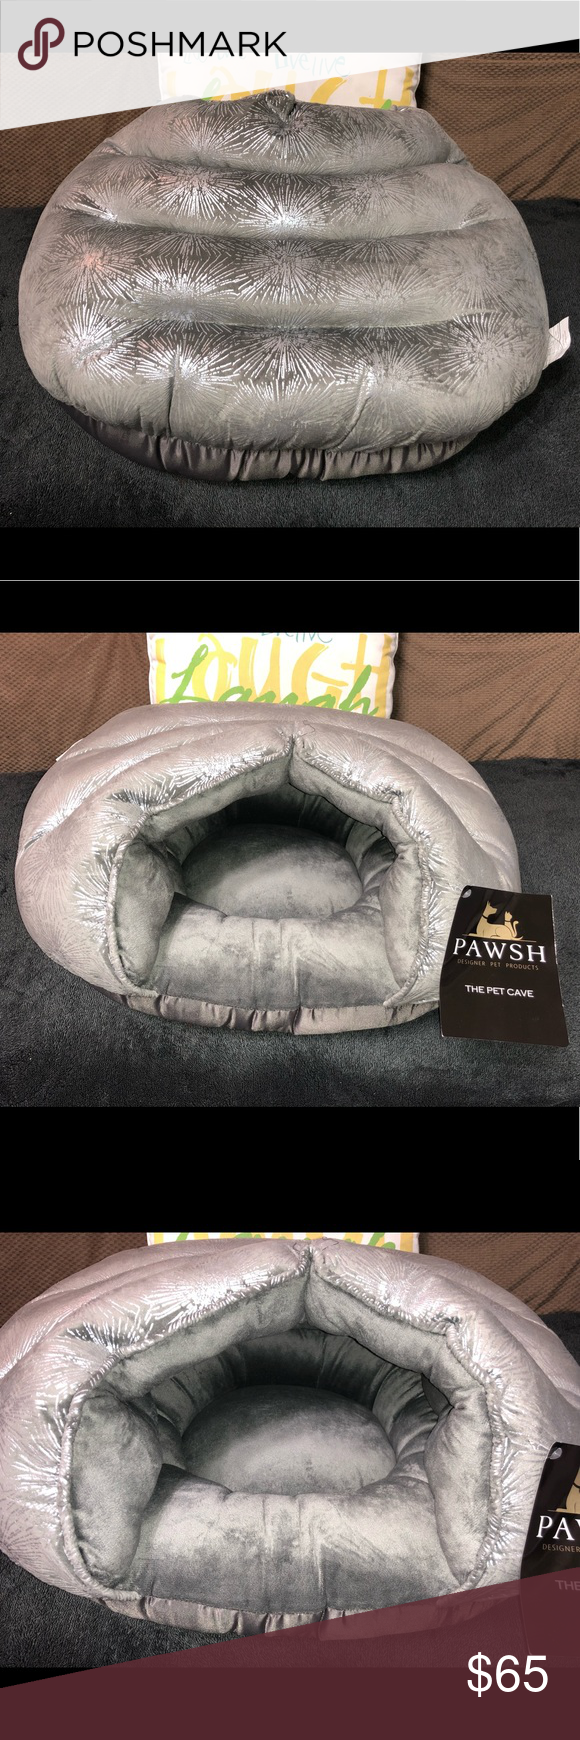 Pawsh The Pet Cave Pet Bed Cat Dog This Beautifully Made Cat Cave Has A Silvery Metallic Print Fabric On The Outside And A Thick Pet Beds Cat Pet Bed Pets